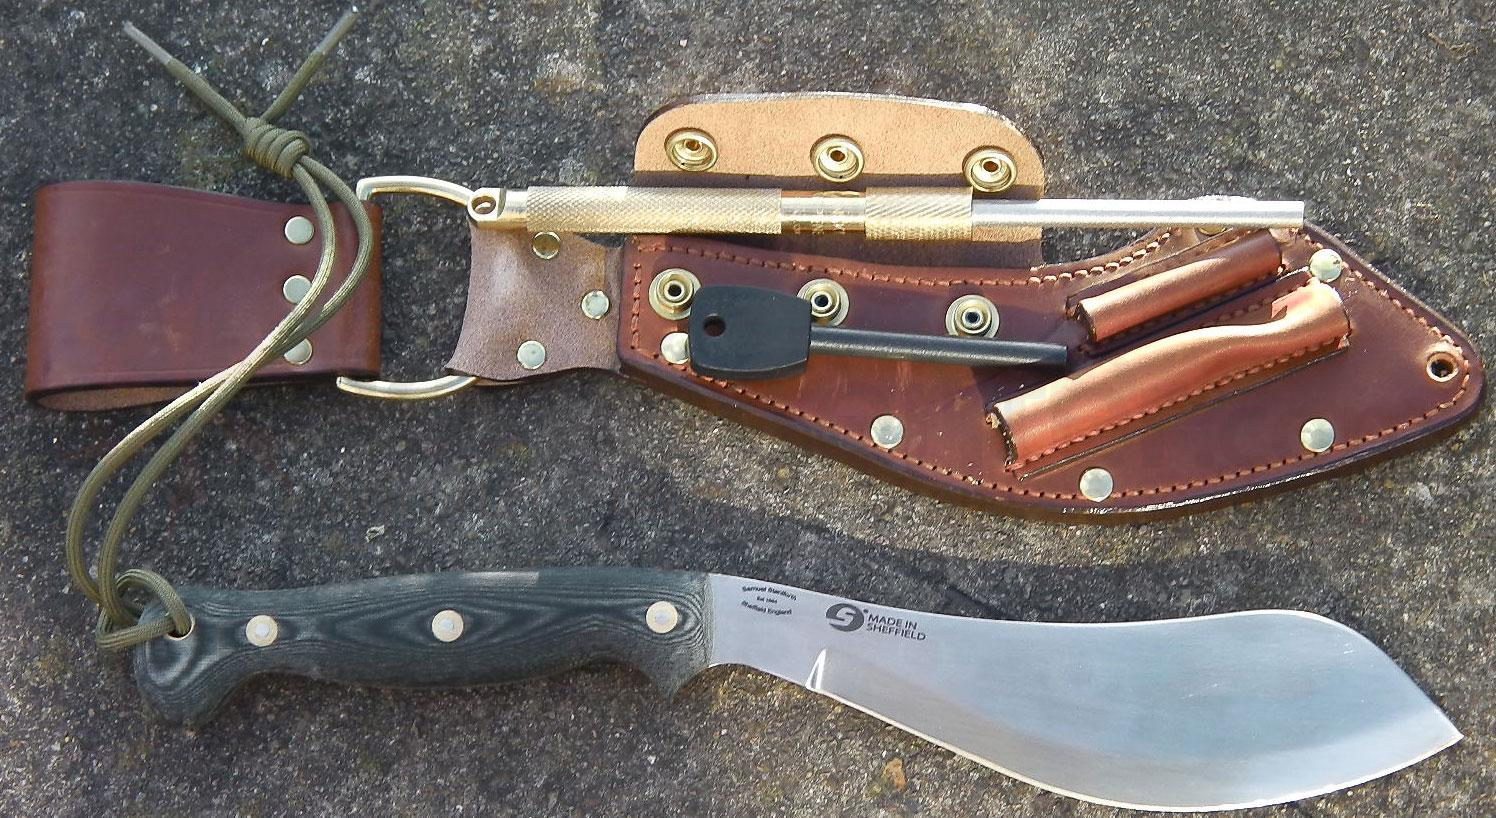 Scorpion Knives Chris Caine Companion Deluxe Survival Tool